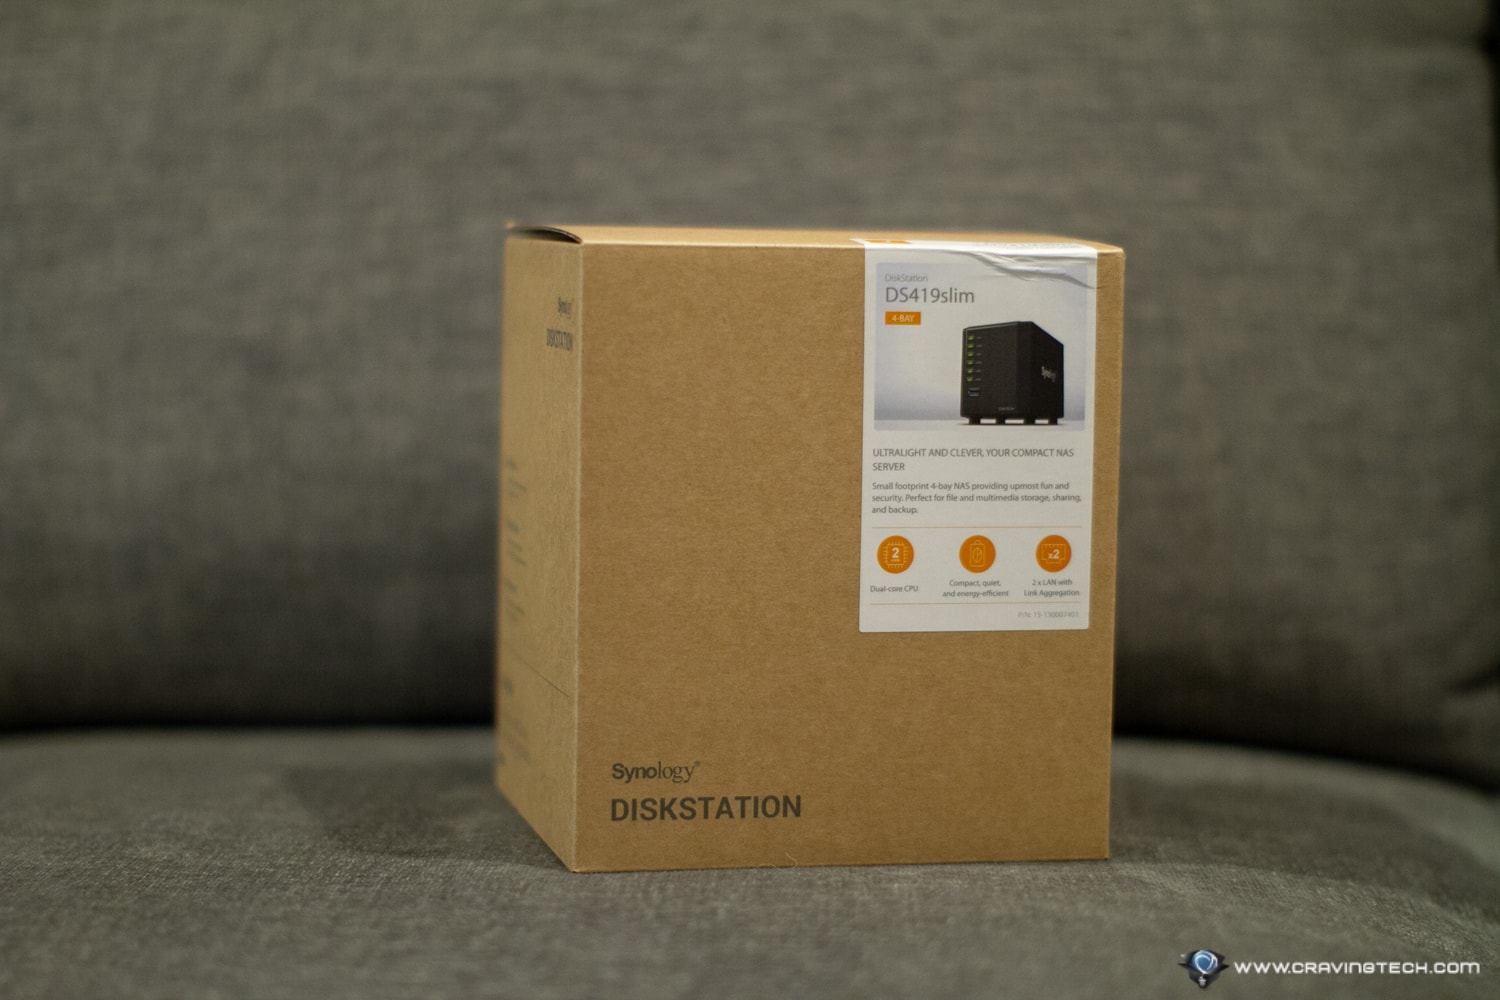 Synology DiskStation DS419slim Packaging